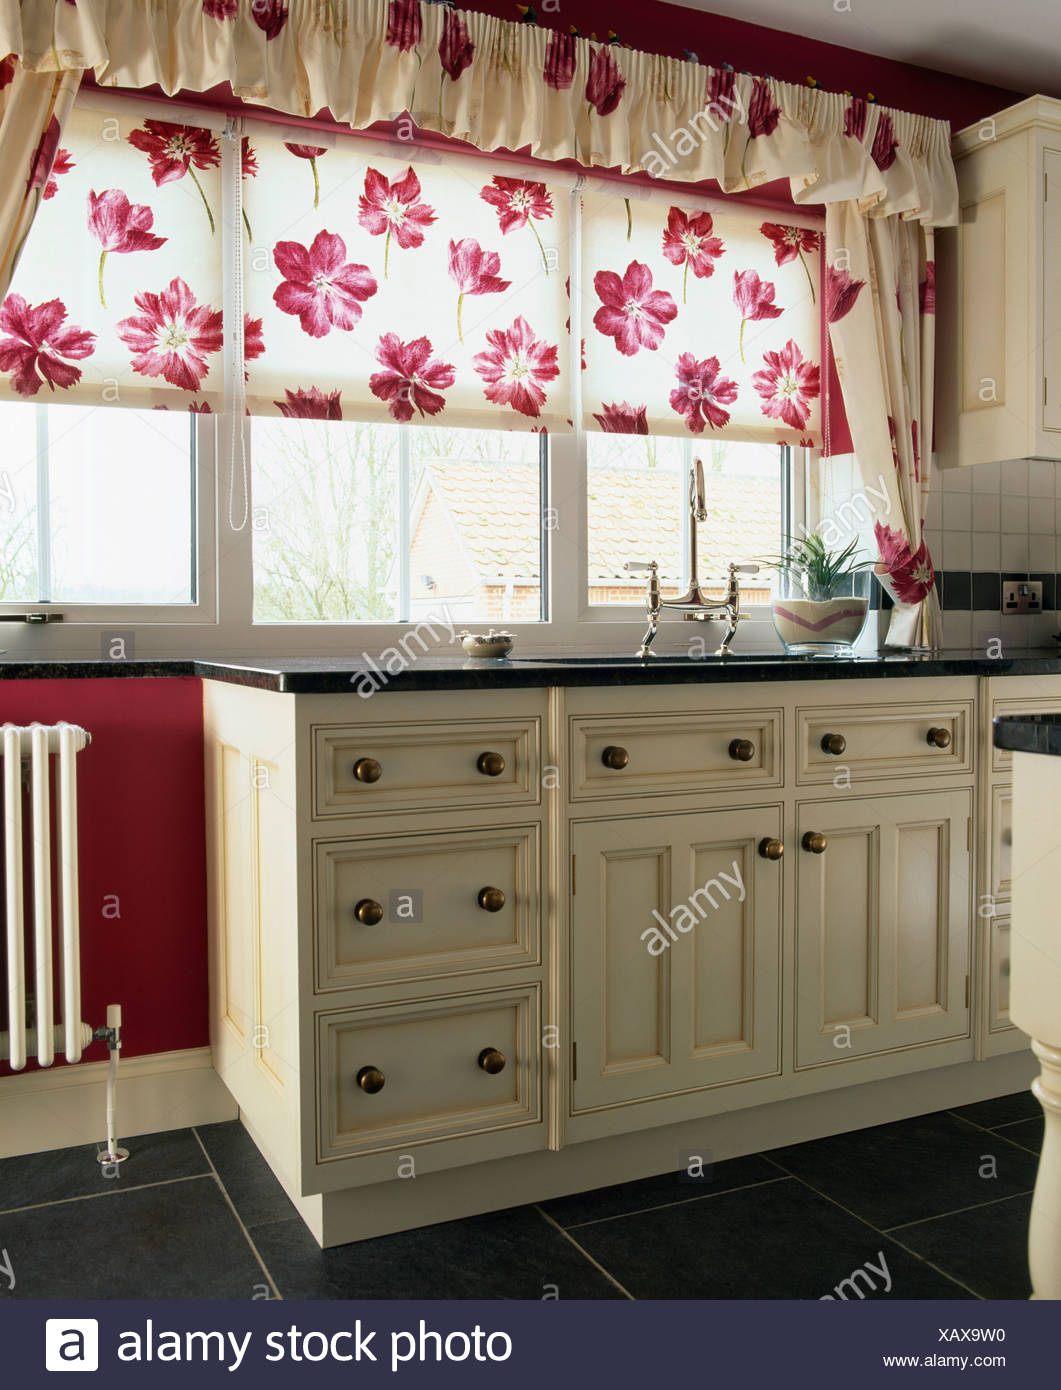 Red White Floral Blind On Window In Traditional Country Kitchen Stock Photo Alamy